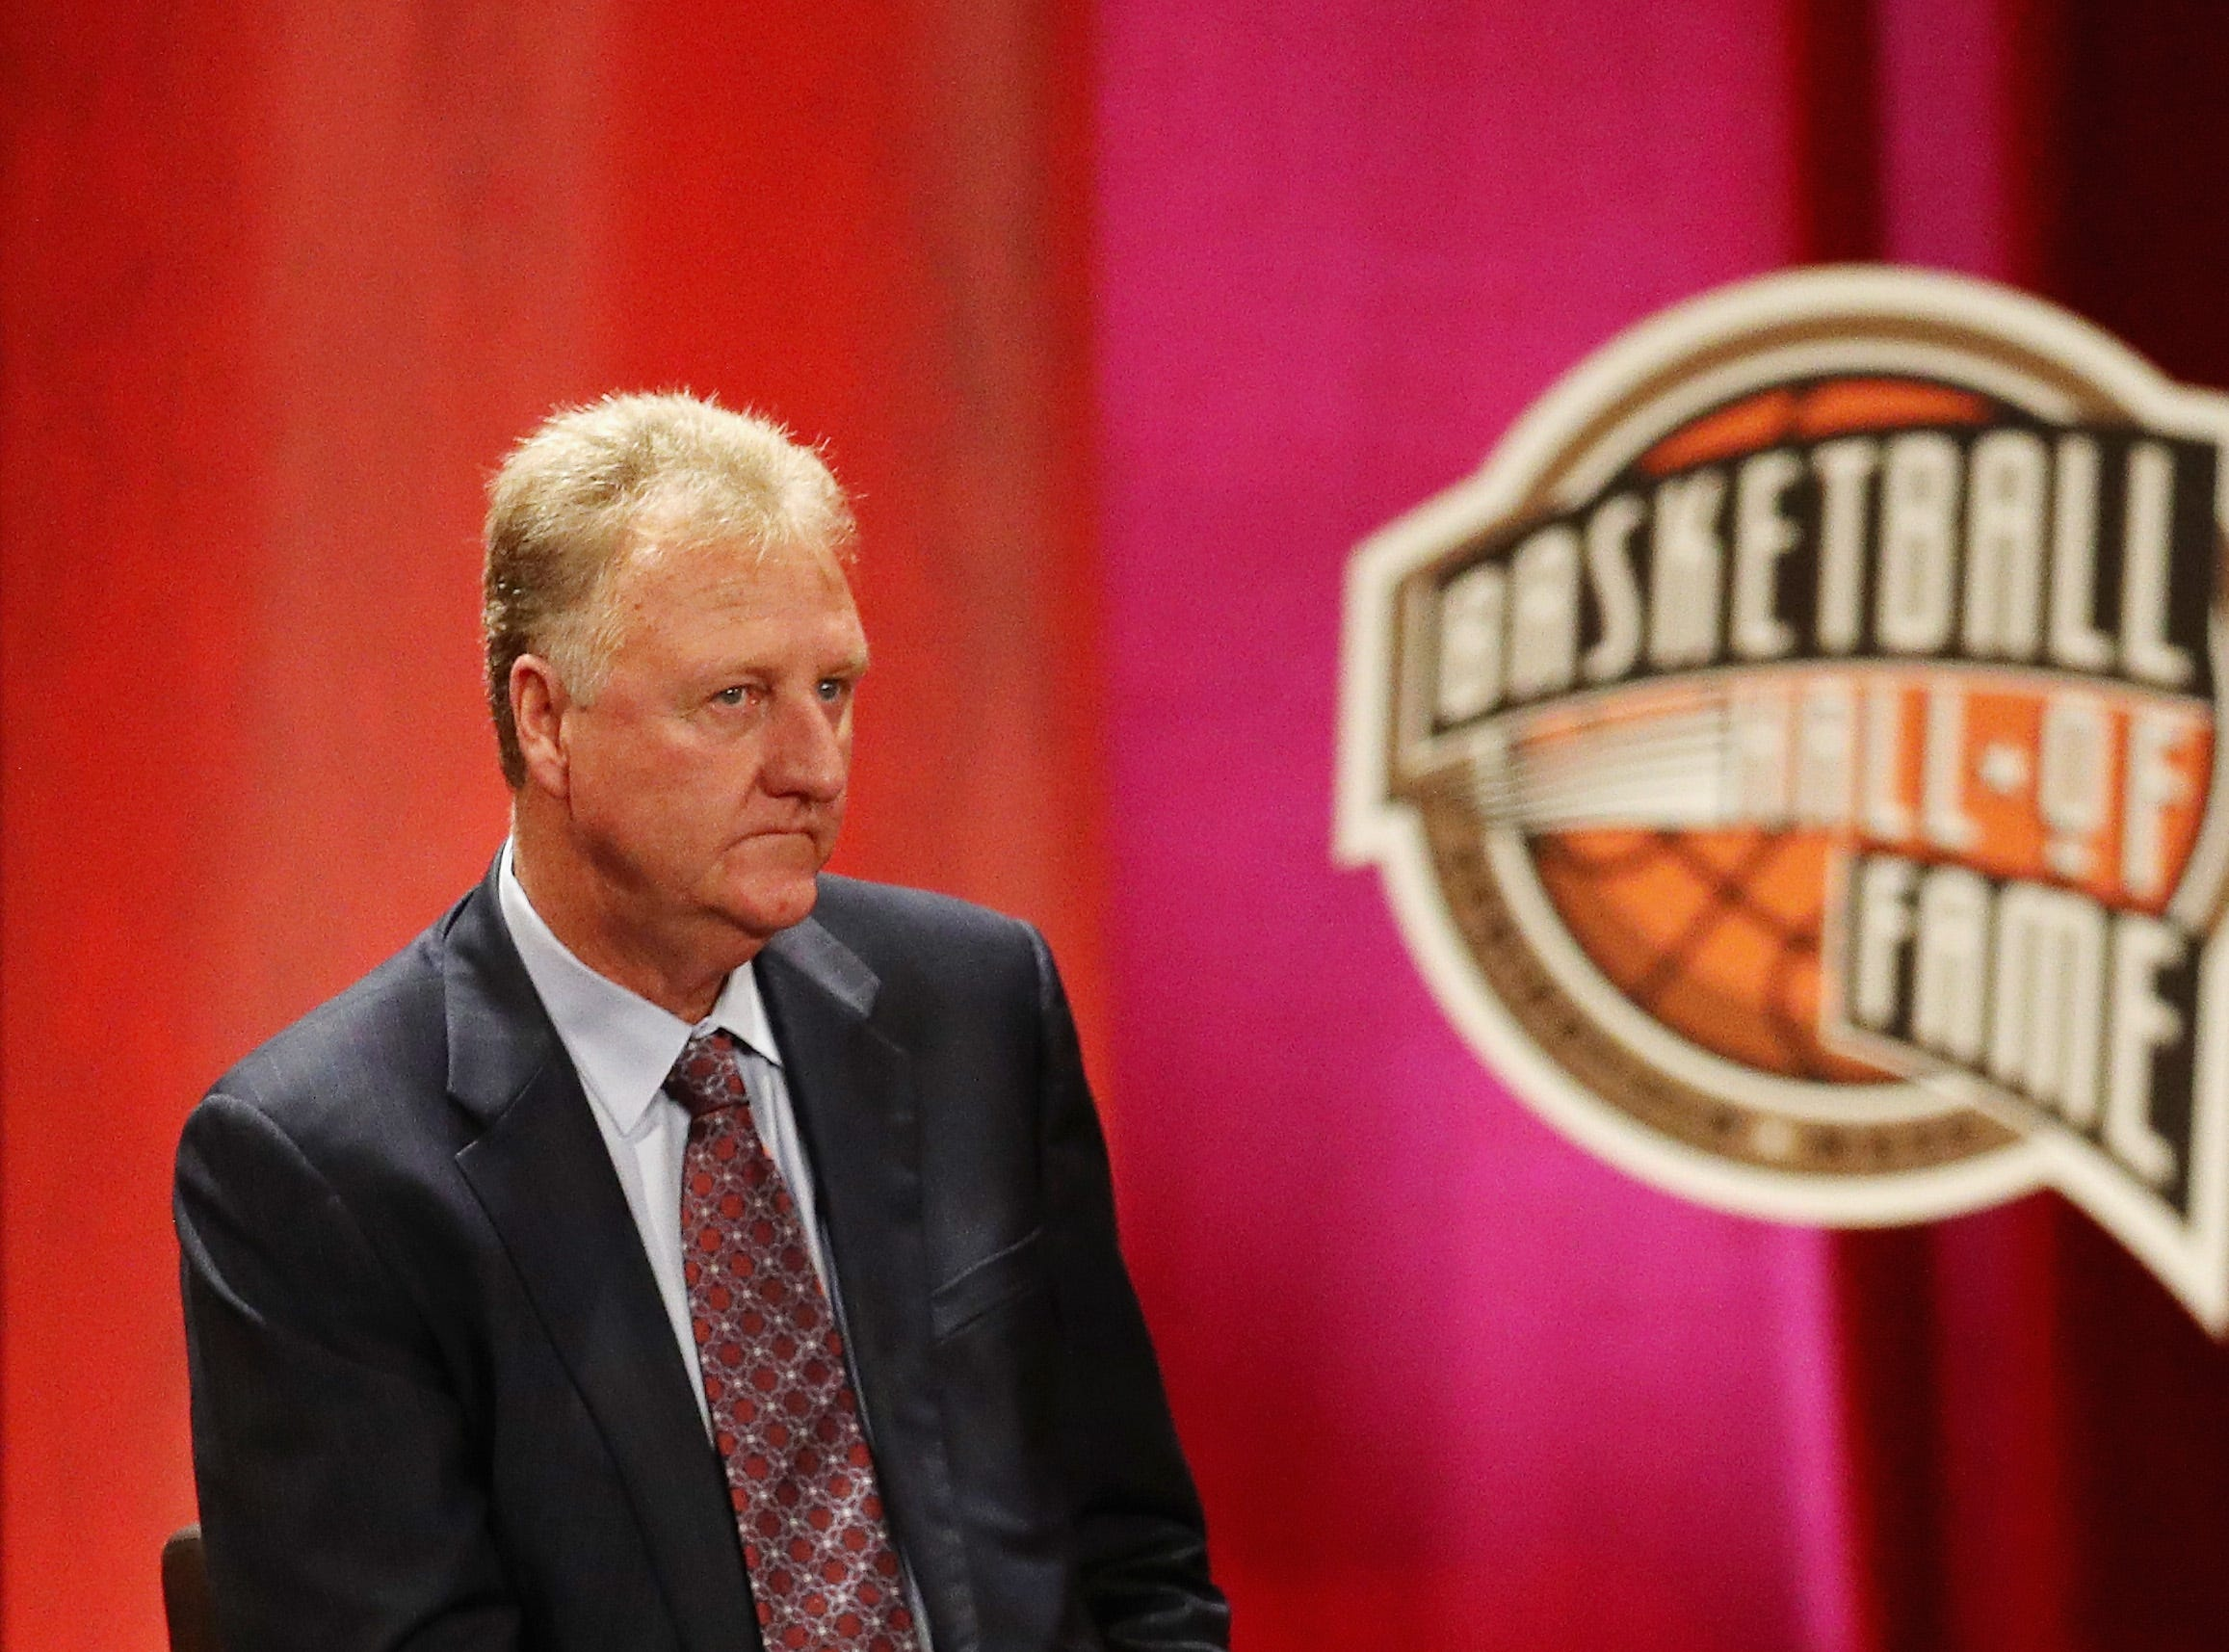 Larry Bird looks on during the 2018 Basketball Hall of Fame Enshrinement Ceremony.